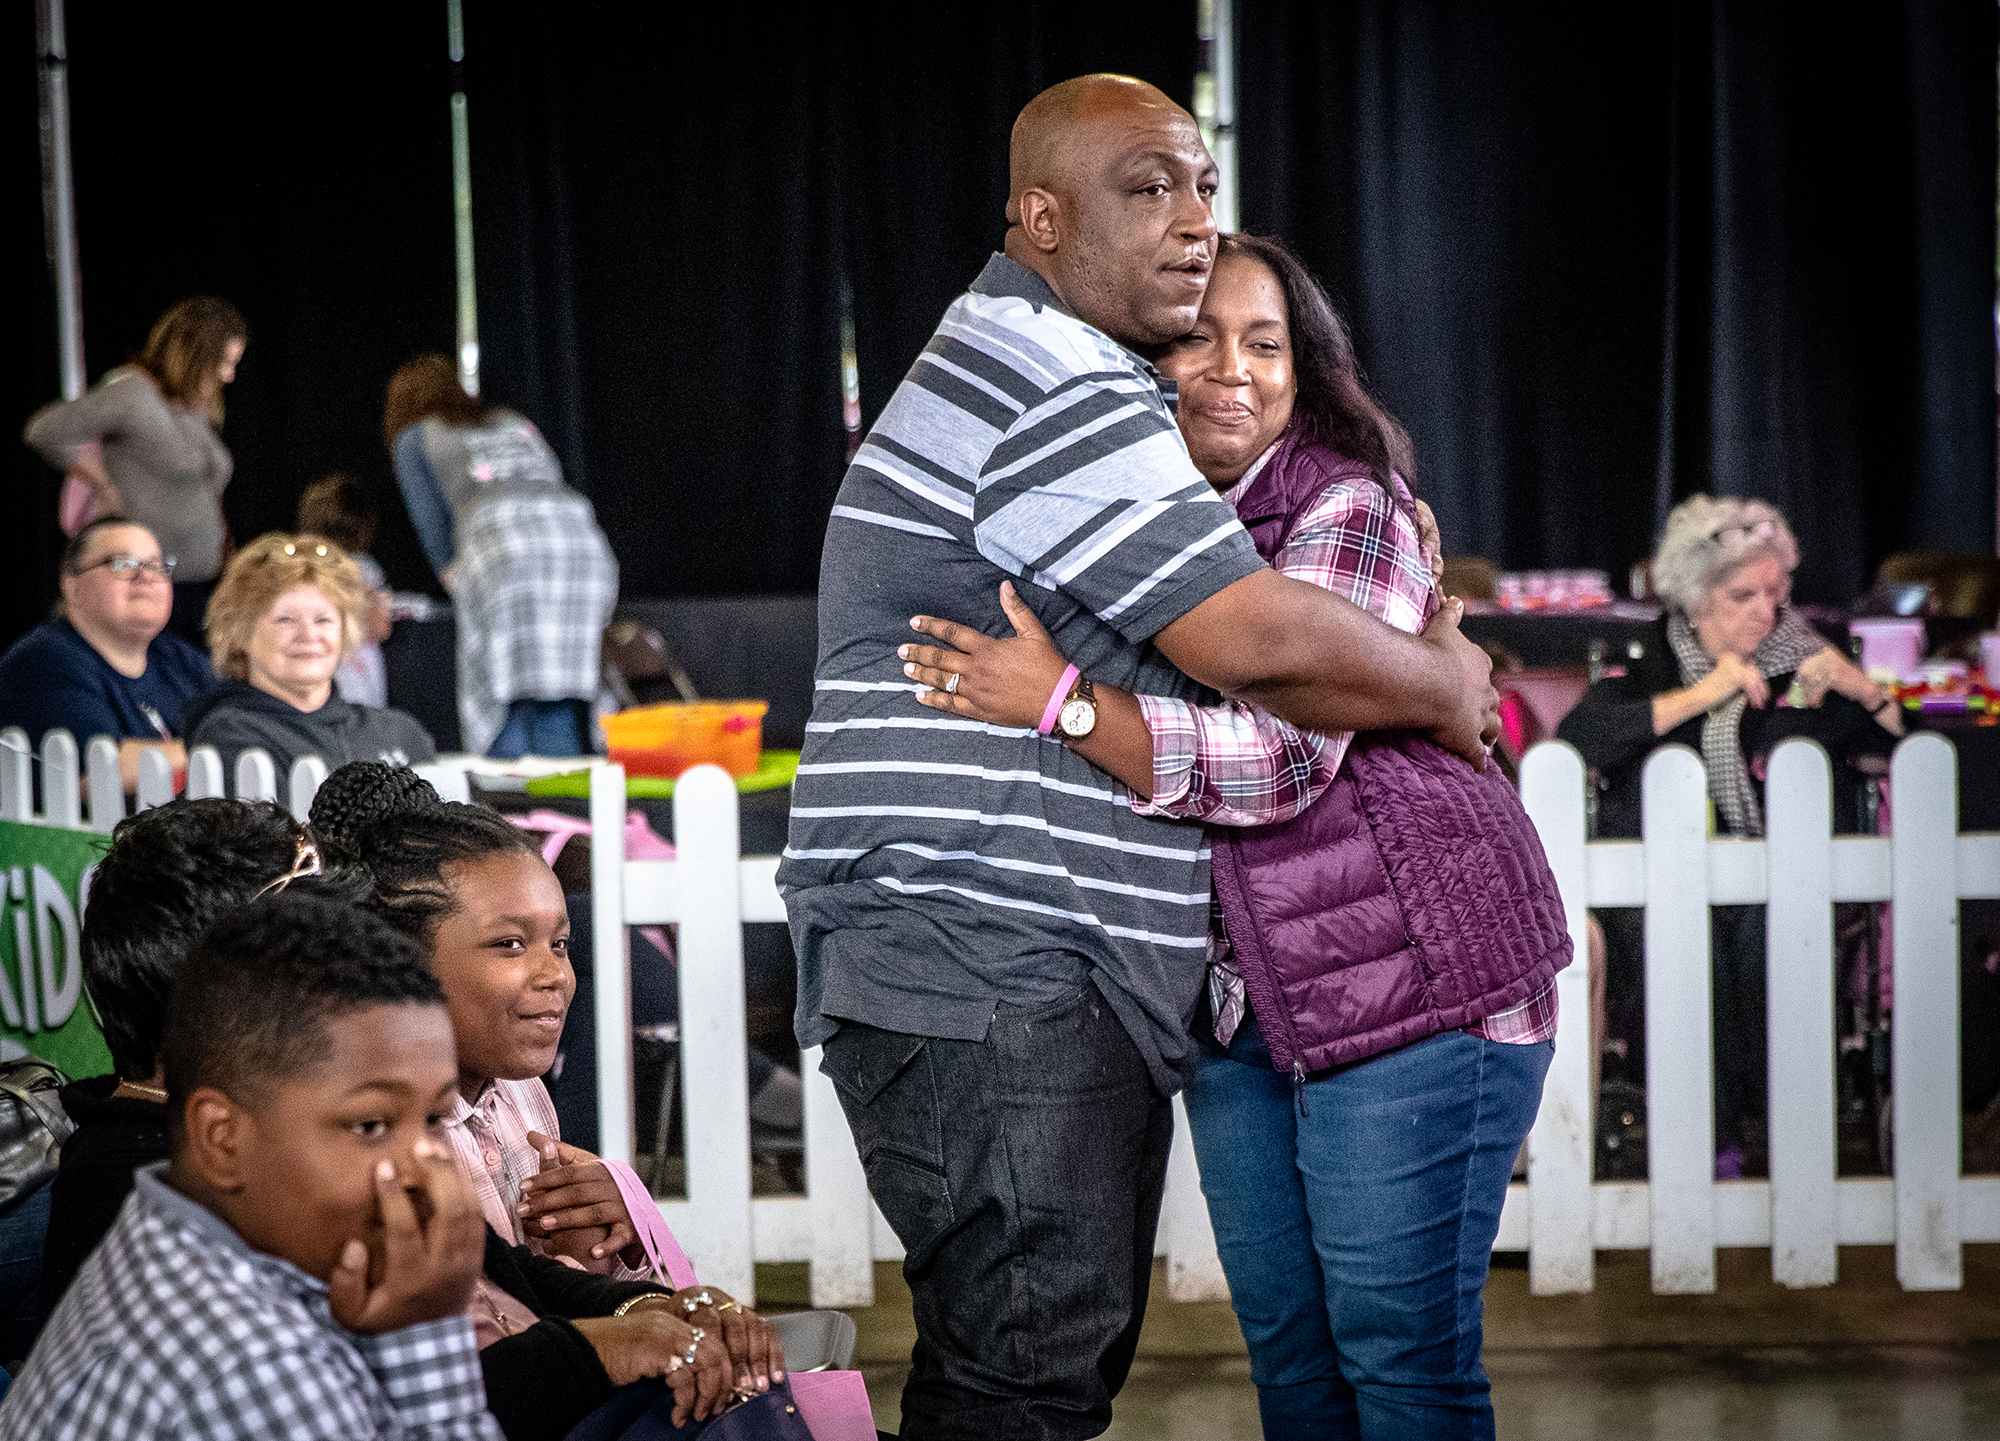 Tamiko Bilbro-Nicholson, right, gets a hug from her husband, Adarian Nicholson, left, after being recognized as one of the three Super Survivors during Memorial Medical Center's Be Aware Women's Fair in the Orr Building at the Illinois State Fairgrounds, Saturday, Oct. 13, 2018, in Springfield, Ill. The Super Survivors are women that have battled breast cancer and their stories of have inspired others. [Justin L. Fowler/The State Journal-Register]